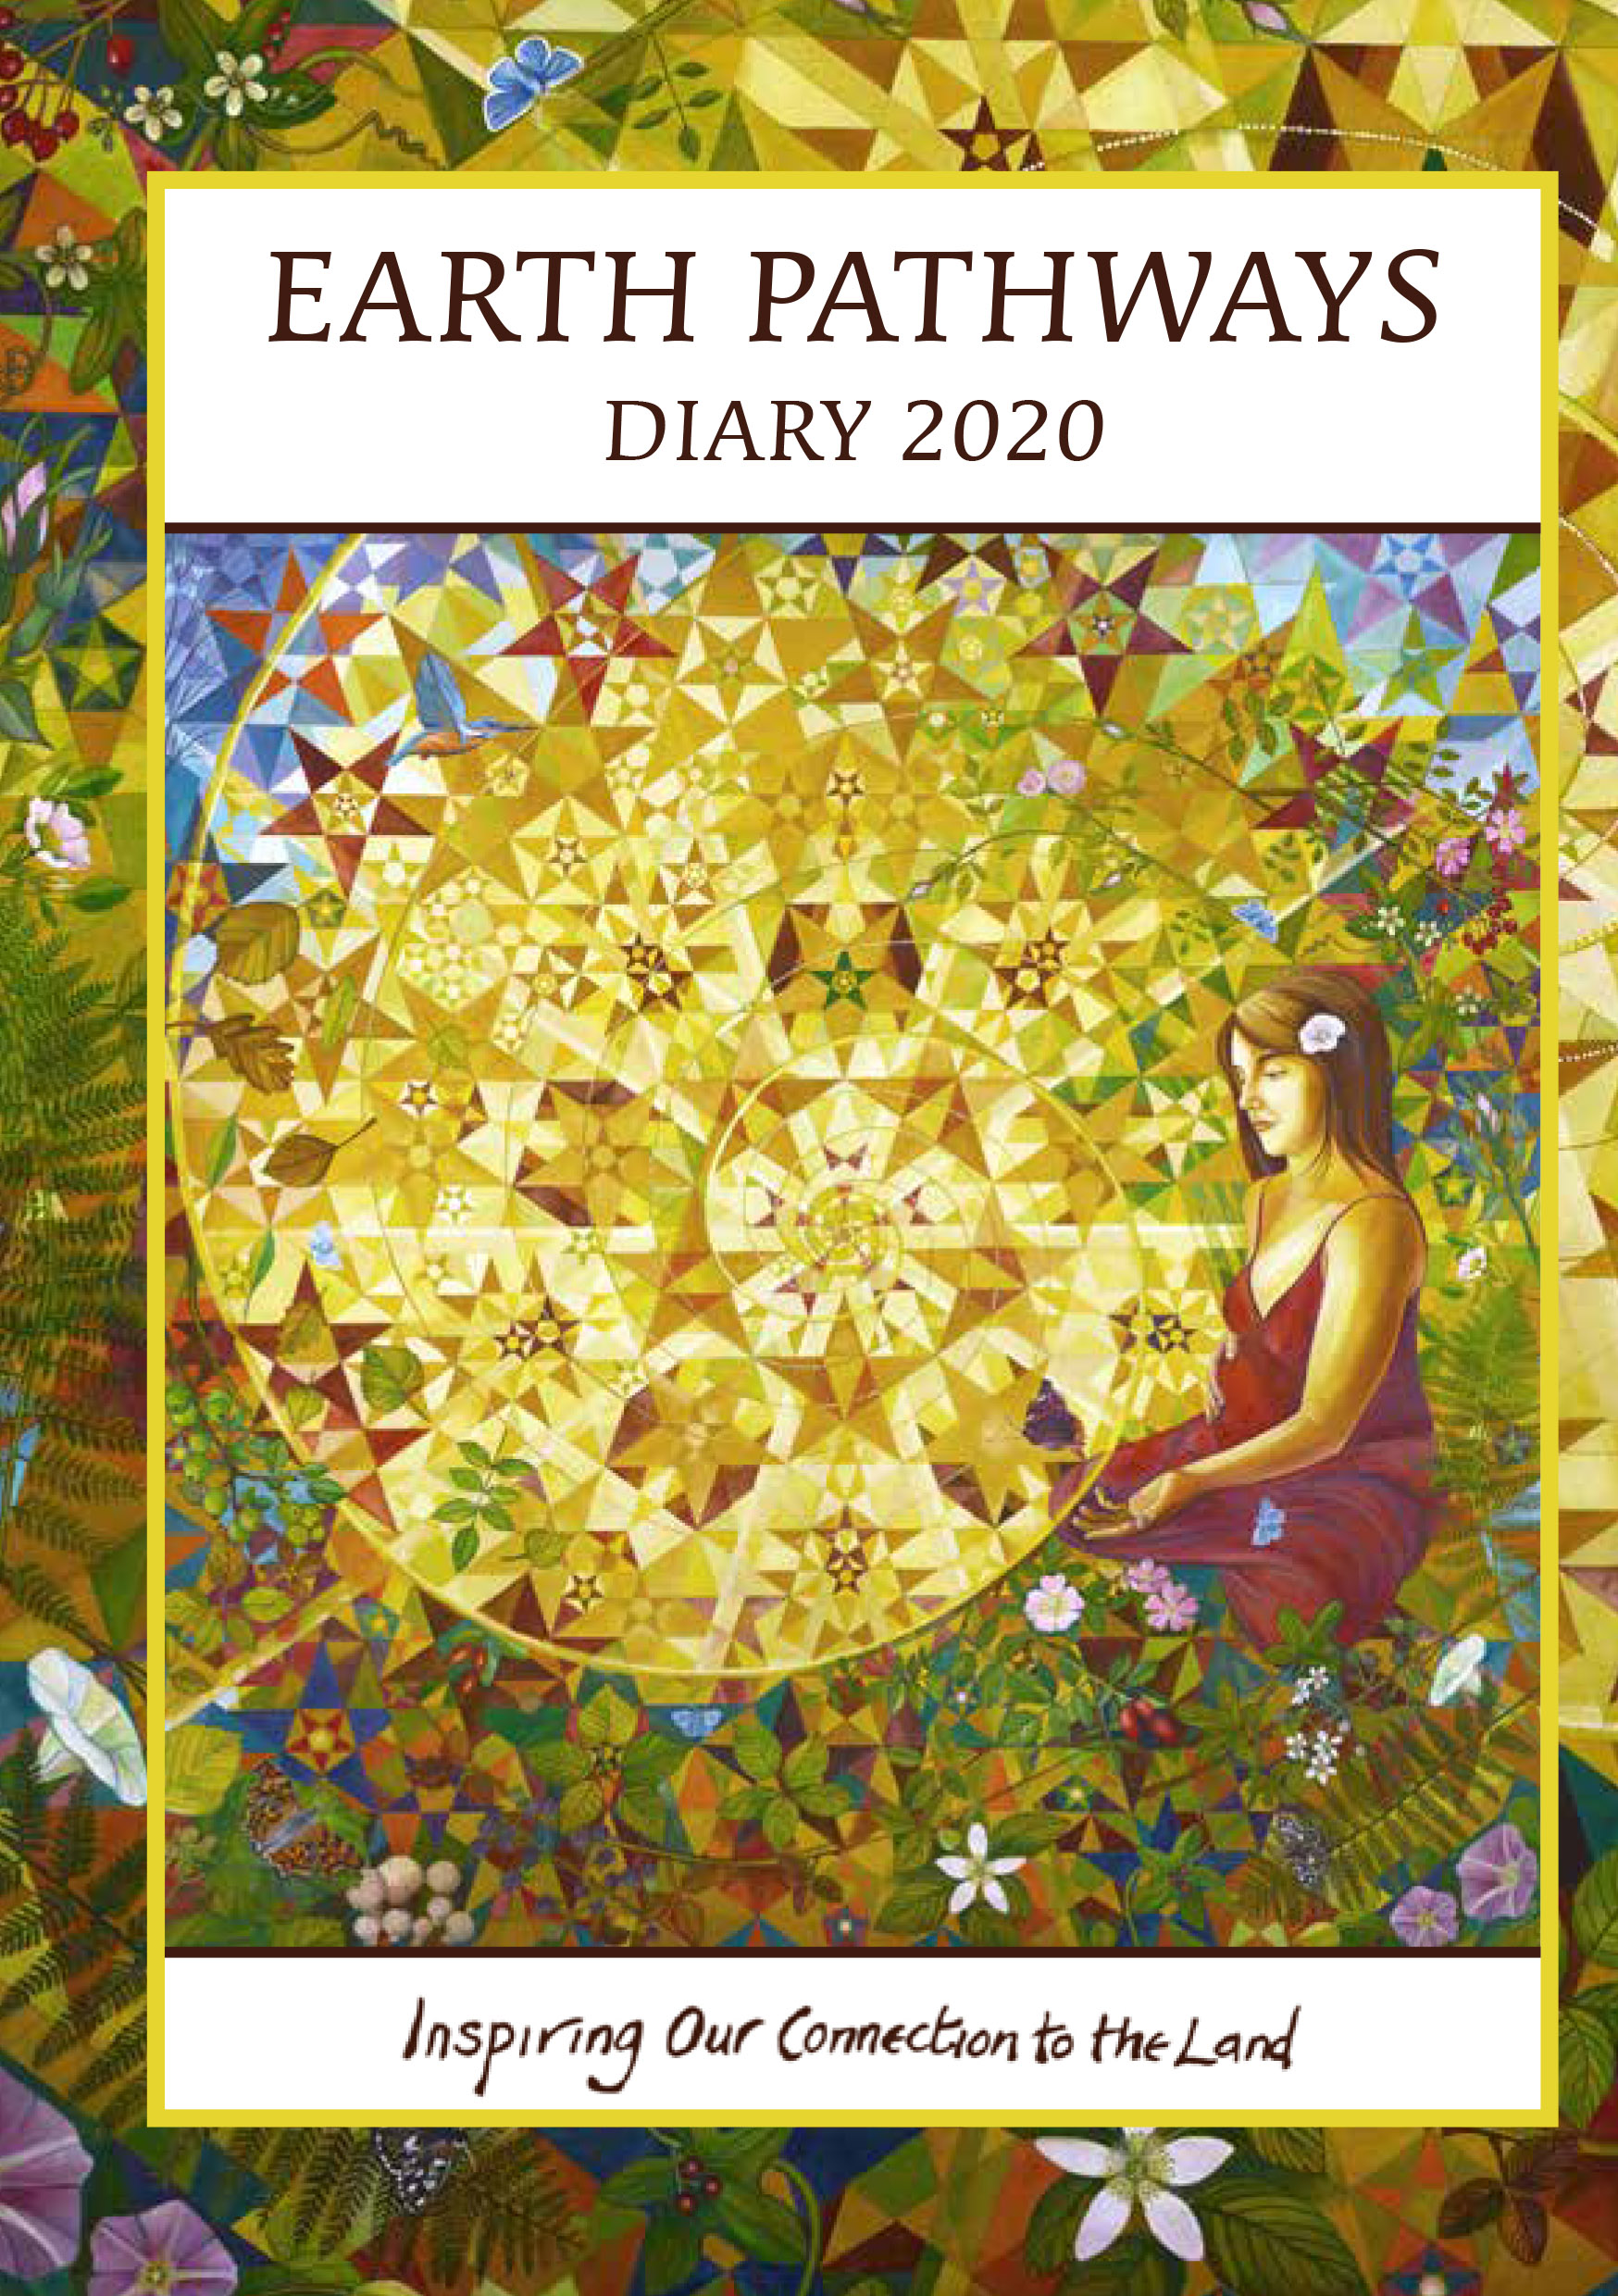 Earth Pathways Diary 2020 | The Best 2020 Pagan and Witchy Planners | WitchcraftedLife.com